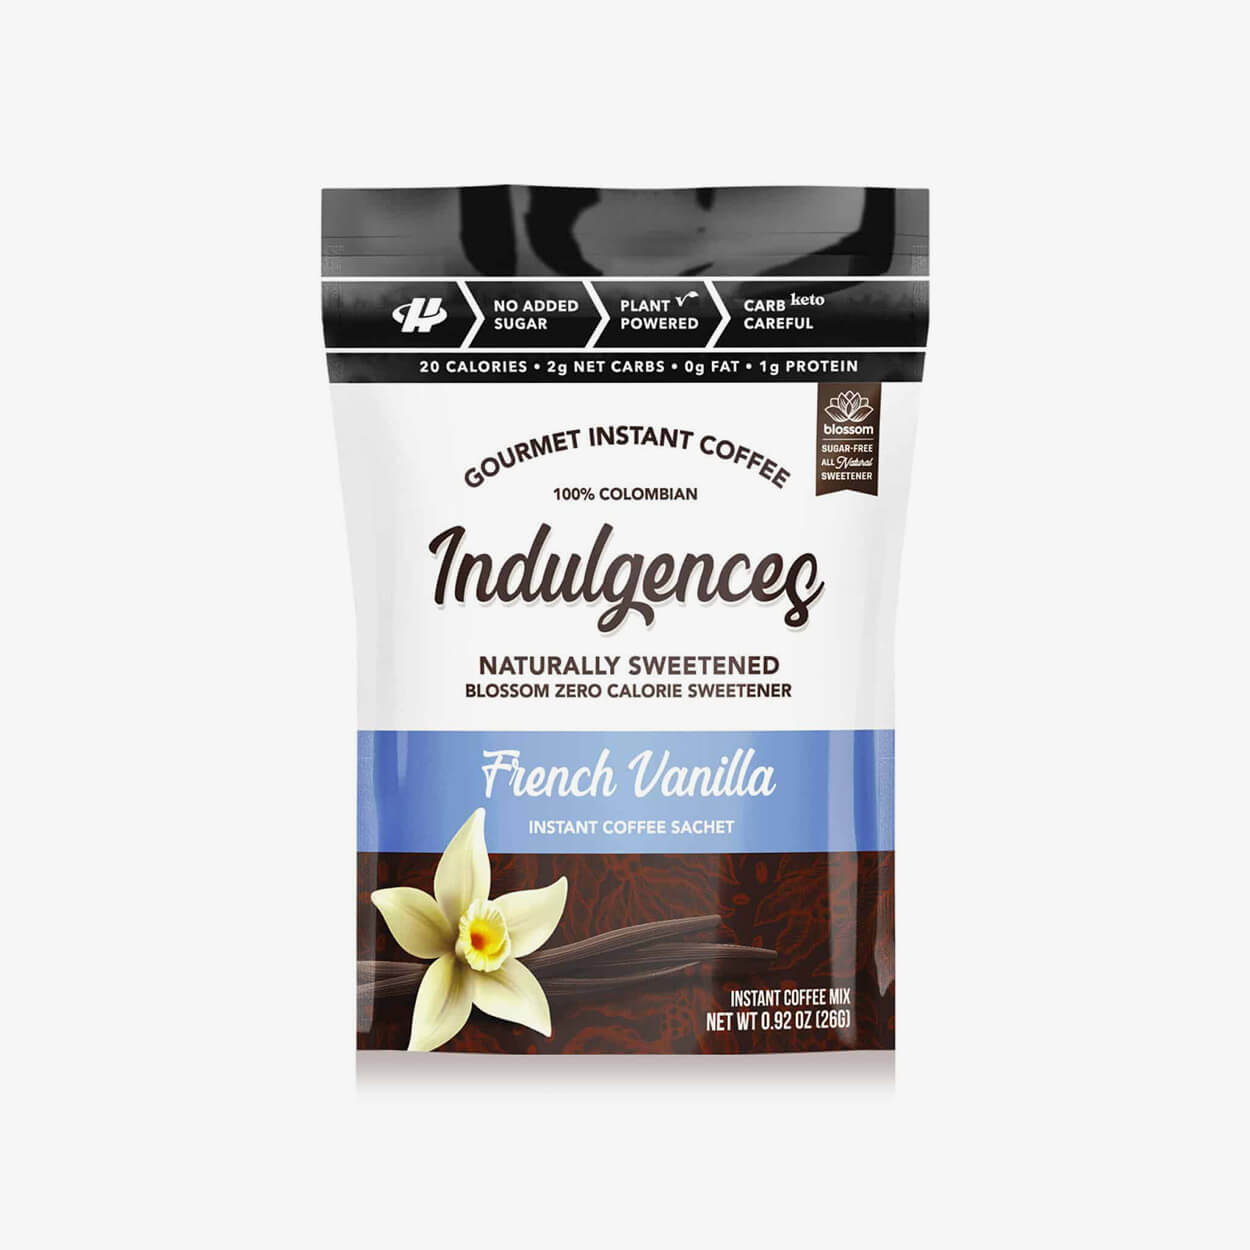 French Vanilla Instant Coffee - Indulgences - Halo Healthy Tribes